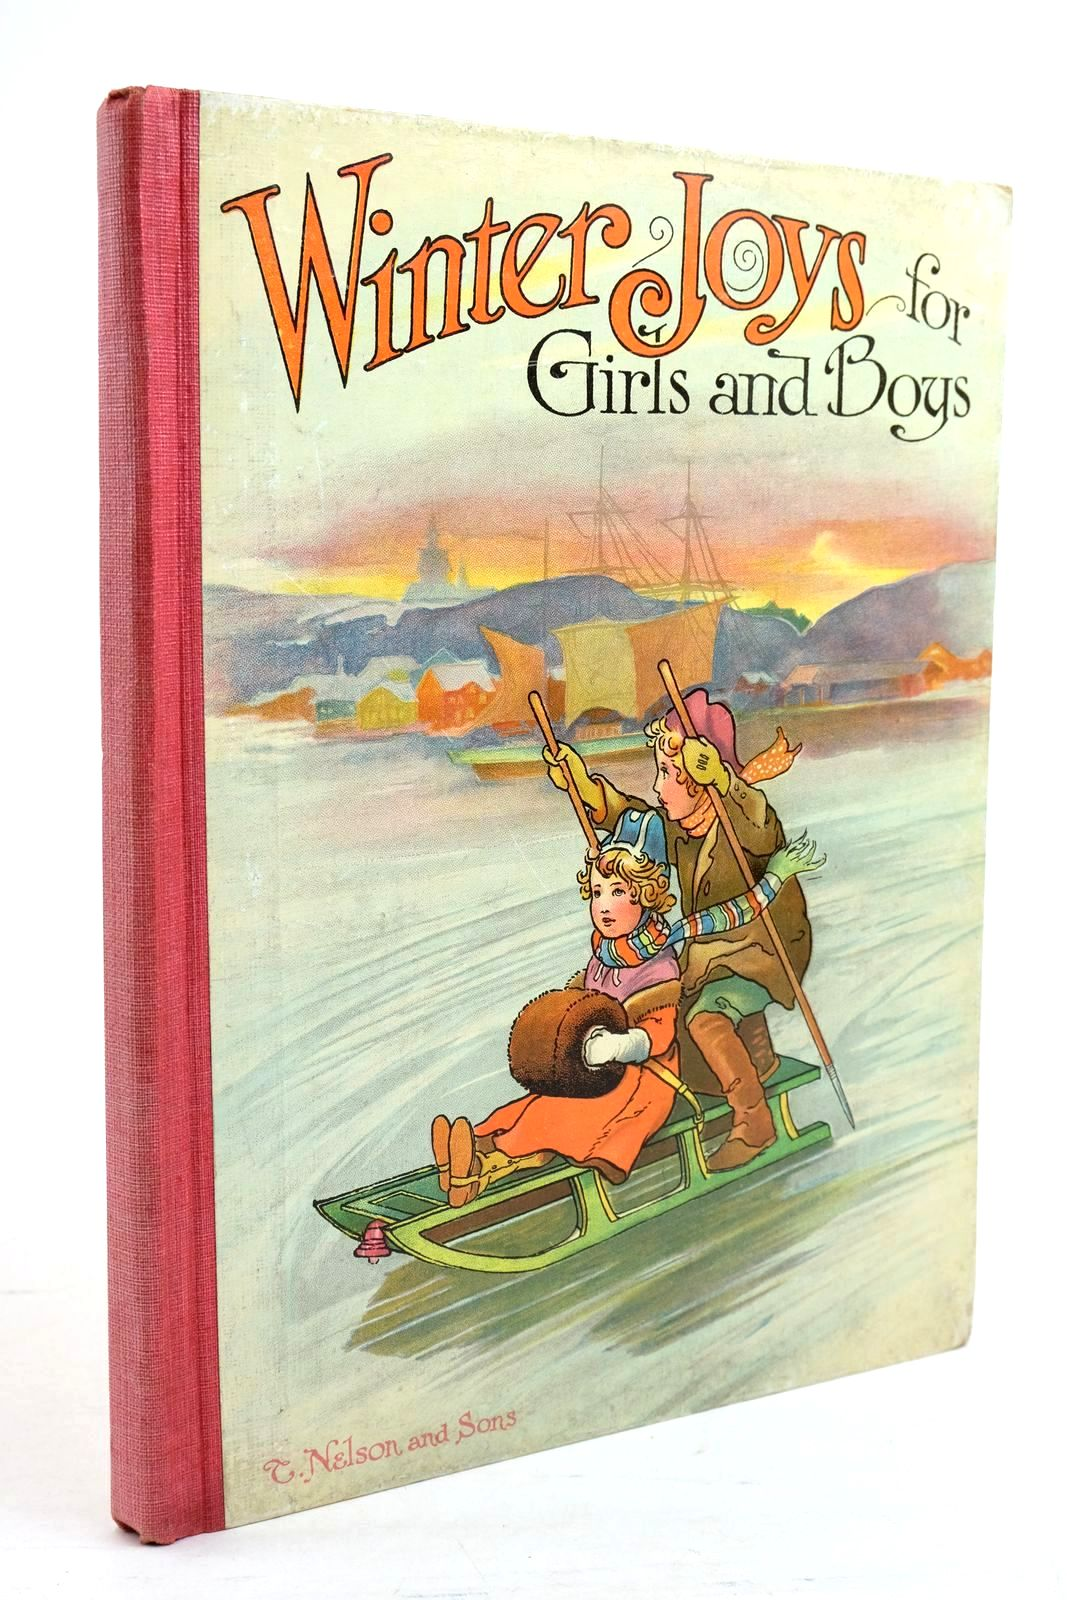 Photo of WINTER JOYS FOR GIRLS AND BOYS illustrated by Hassall, John Lance, E. et al.,  published by Thomas Nelson & Sons (STOCK CODE: 1320793)  for sale by Stella & Rose's Books